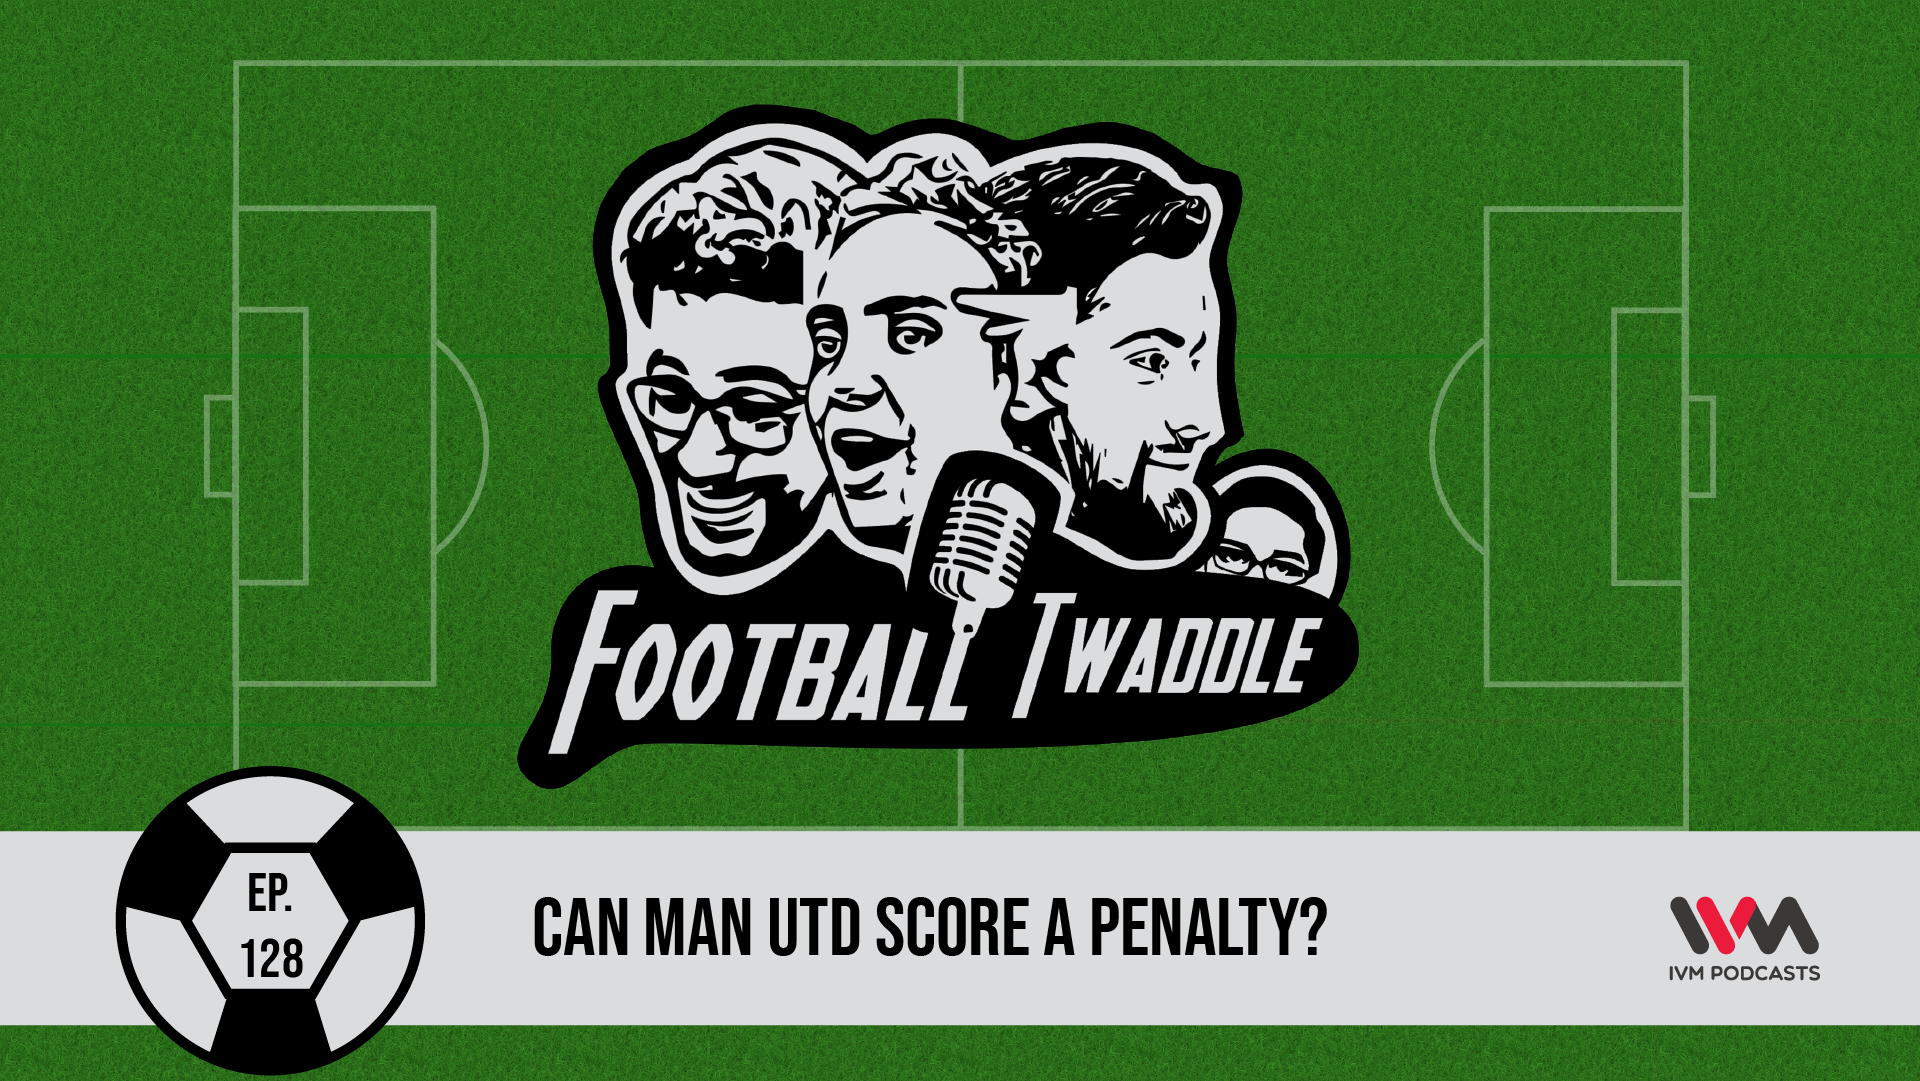 FootballTwaddleEpisode128.png